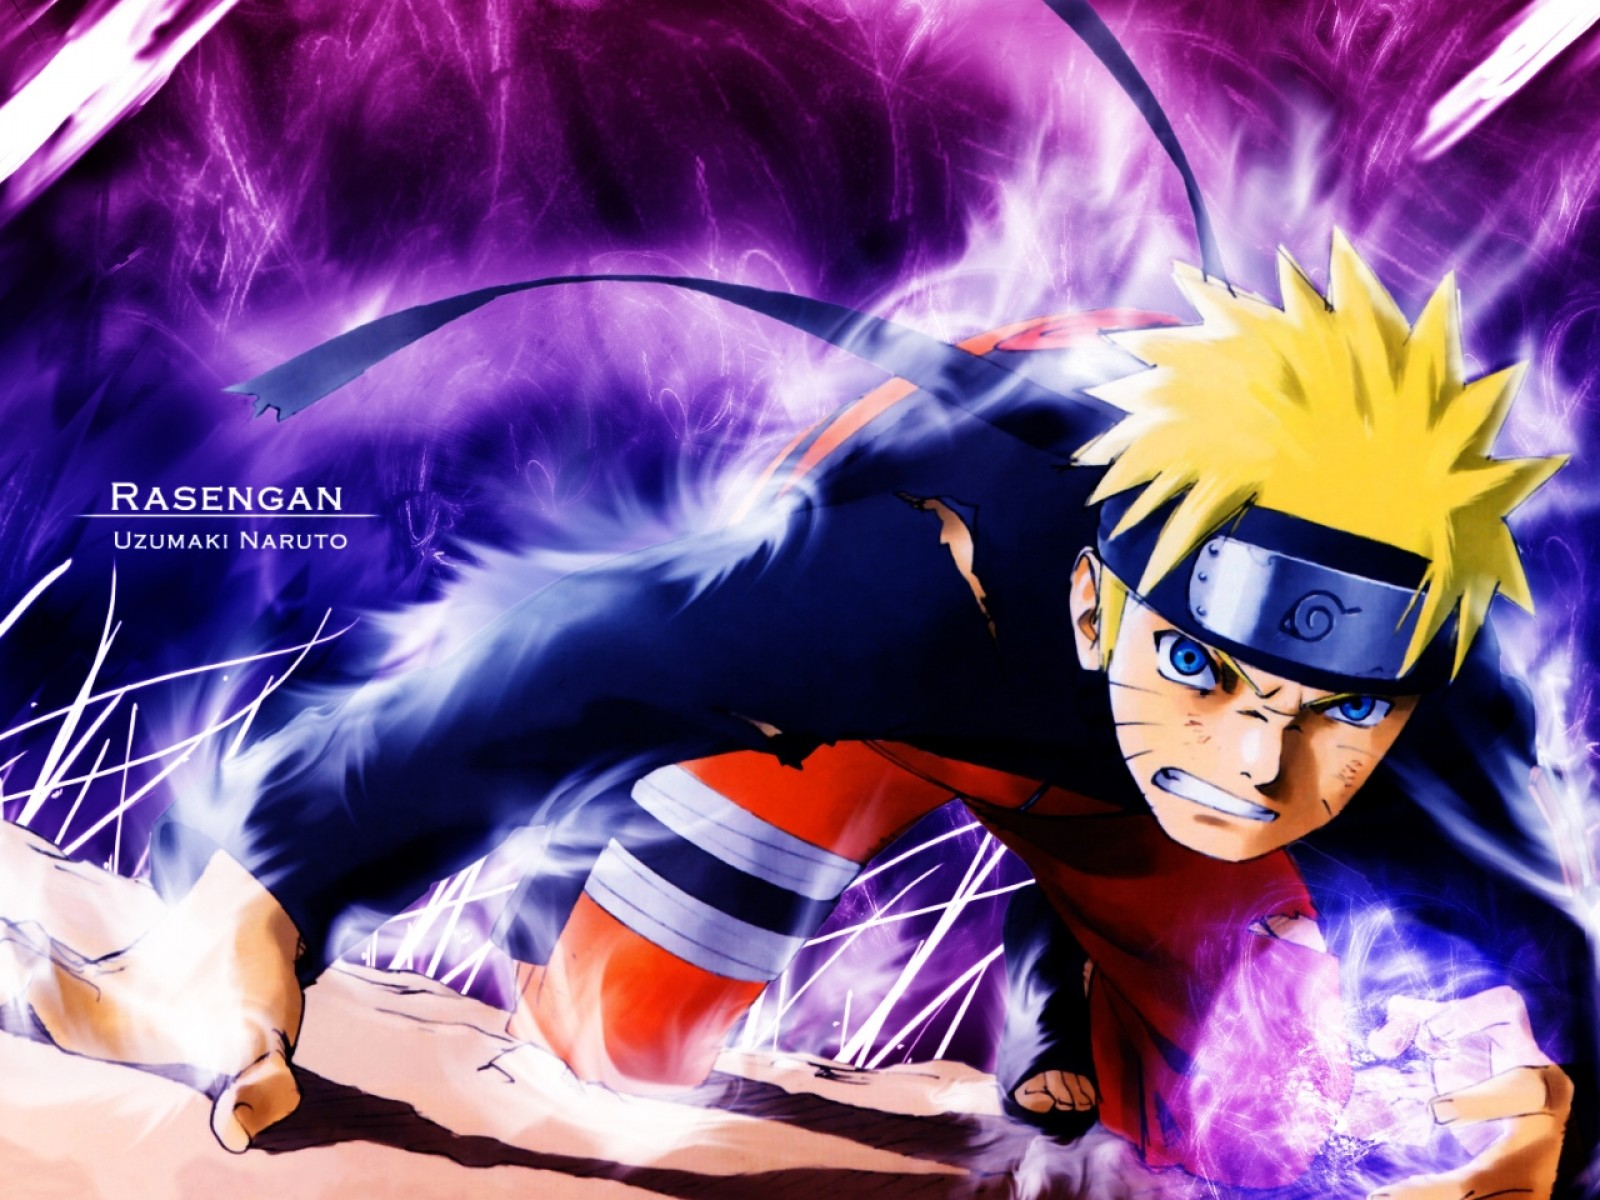 http://3.bp.blogspot.com/-pKVnnWsSeyI/T-5N0qQLW9I/AAAAAAAAHBQ/7D0WjXN13ug/s1600/The-best-top-hd-desktop-naruto-shippuden-wallpaper-naruto-shippuden-wallpapers-hd-1.jpg